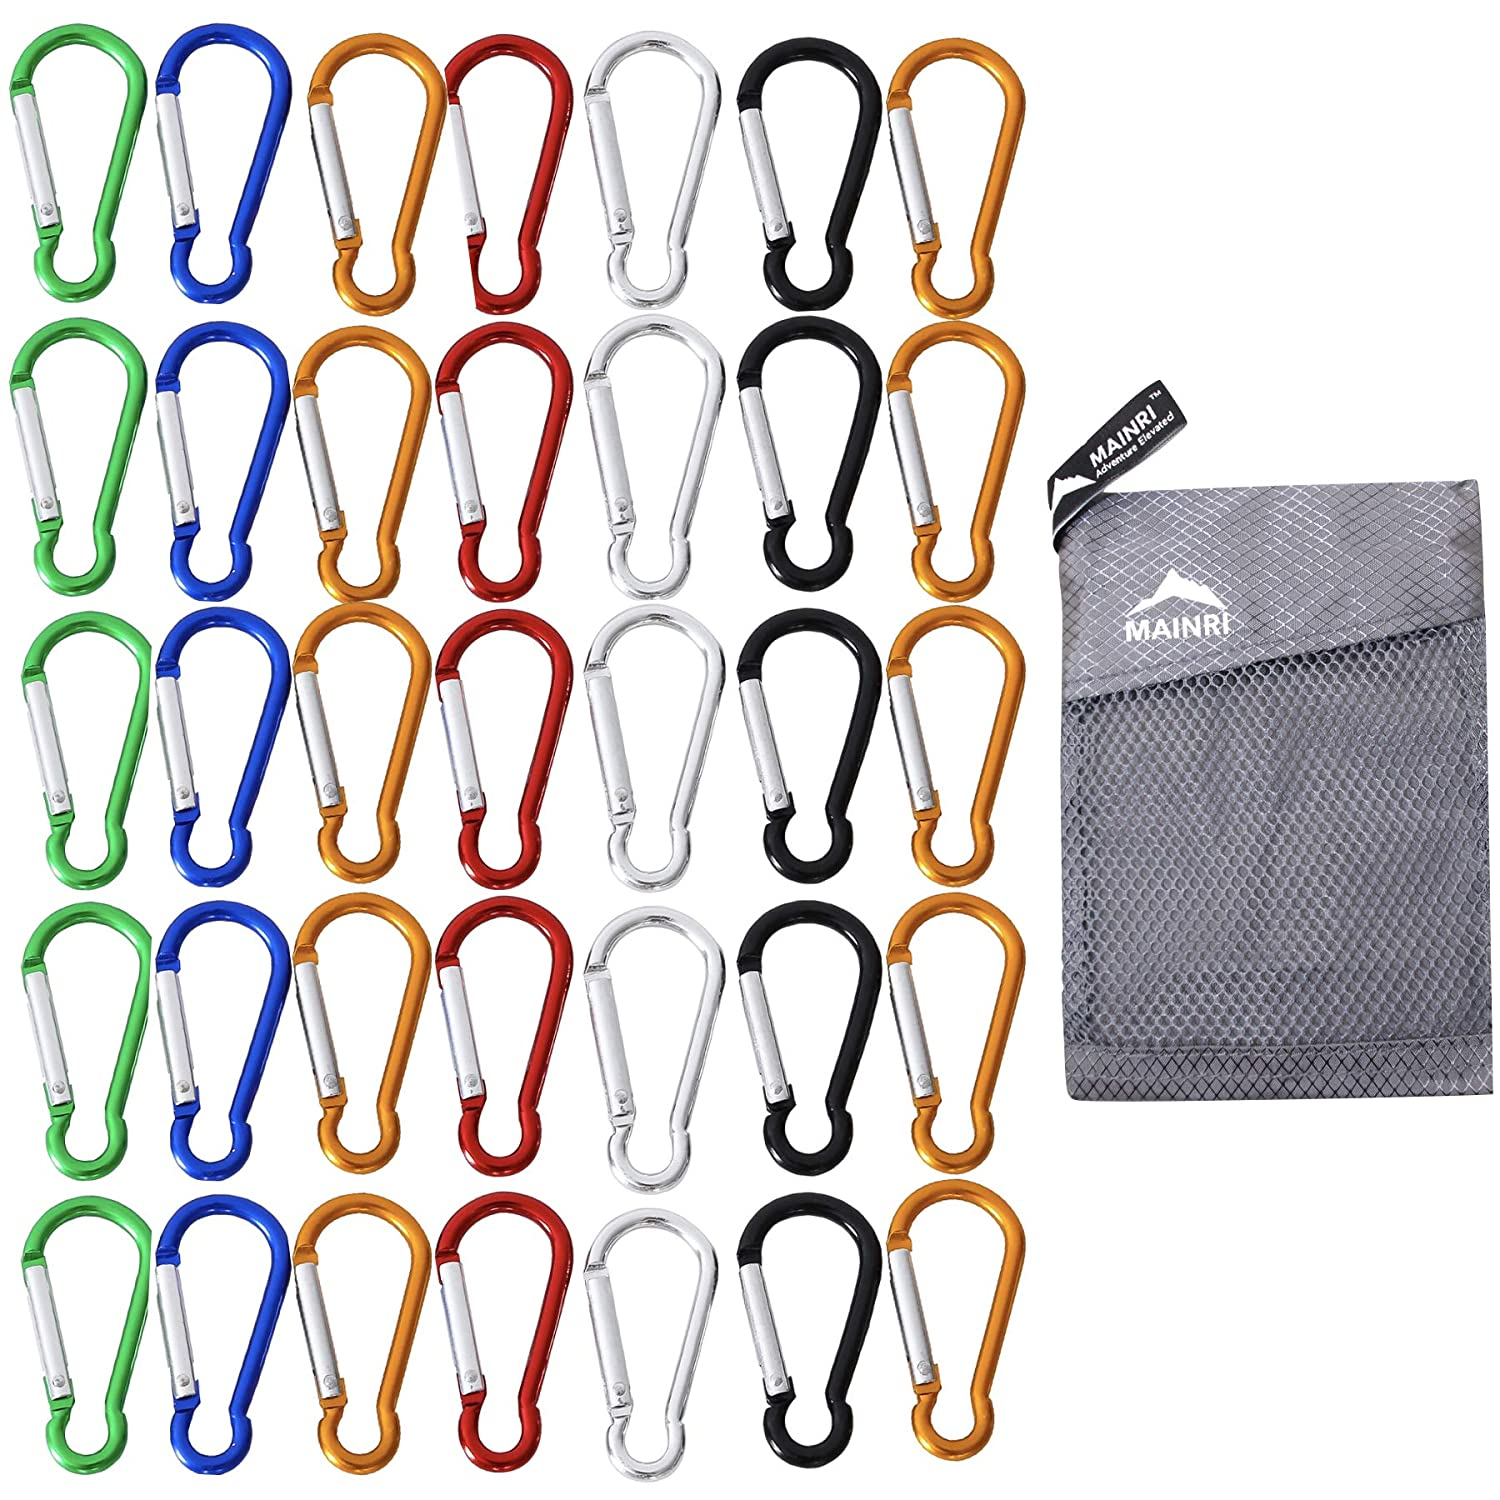 MAINRI 35 PACK Carabiner Clip Keychain Mini Carabiner Strong Small Carabiner Spring Aluminum Carabiner Outdoor Caribeaners Camping Hiking Hook Traveling Backpack Accessories Random Colors Mixed